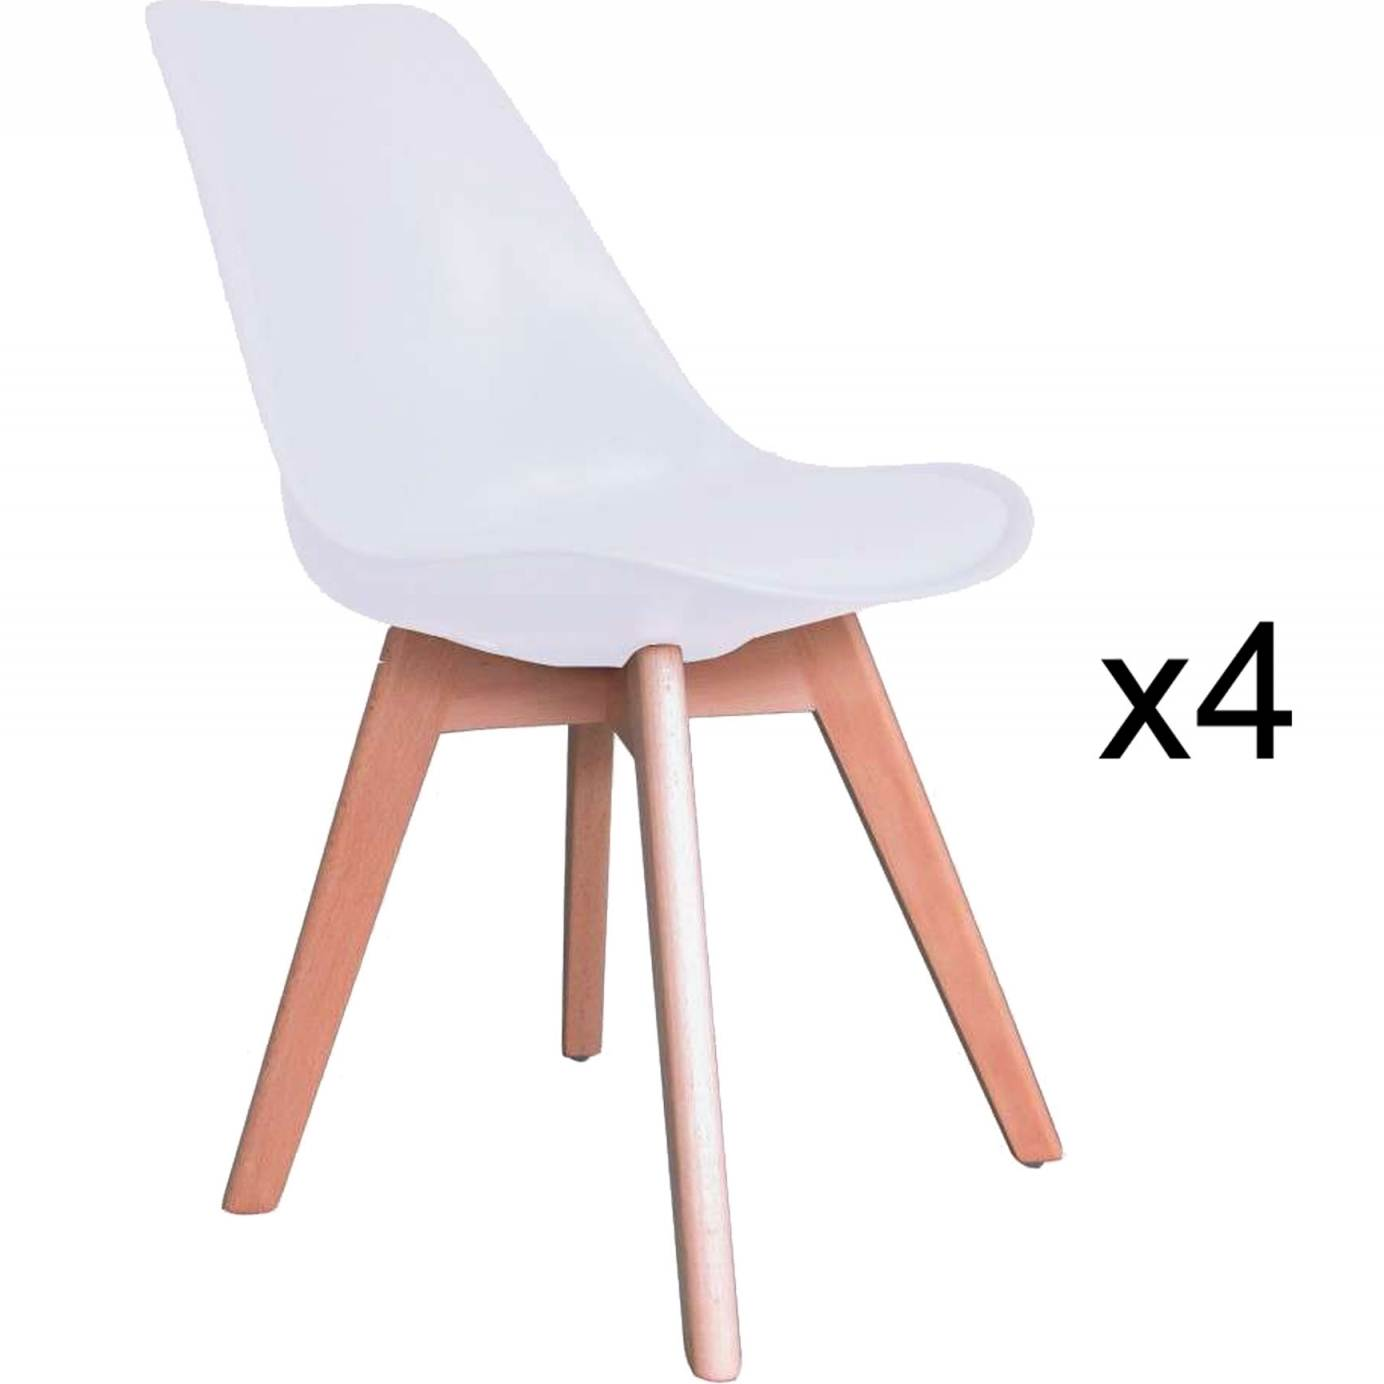 deco in paris 1 lot de 4 chaises scandinave blanc gala gala blanc x4. Black Bedroom Furniture Sets. Home Design Ideas